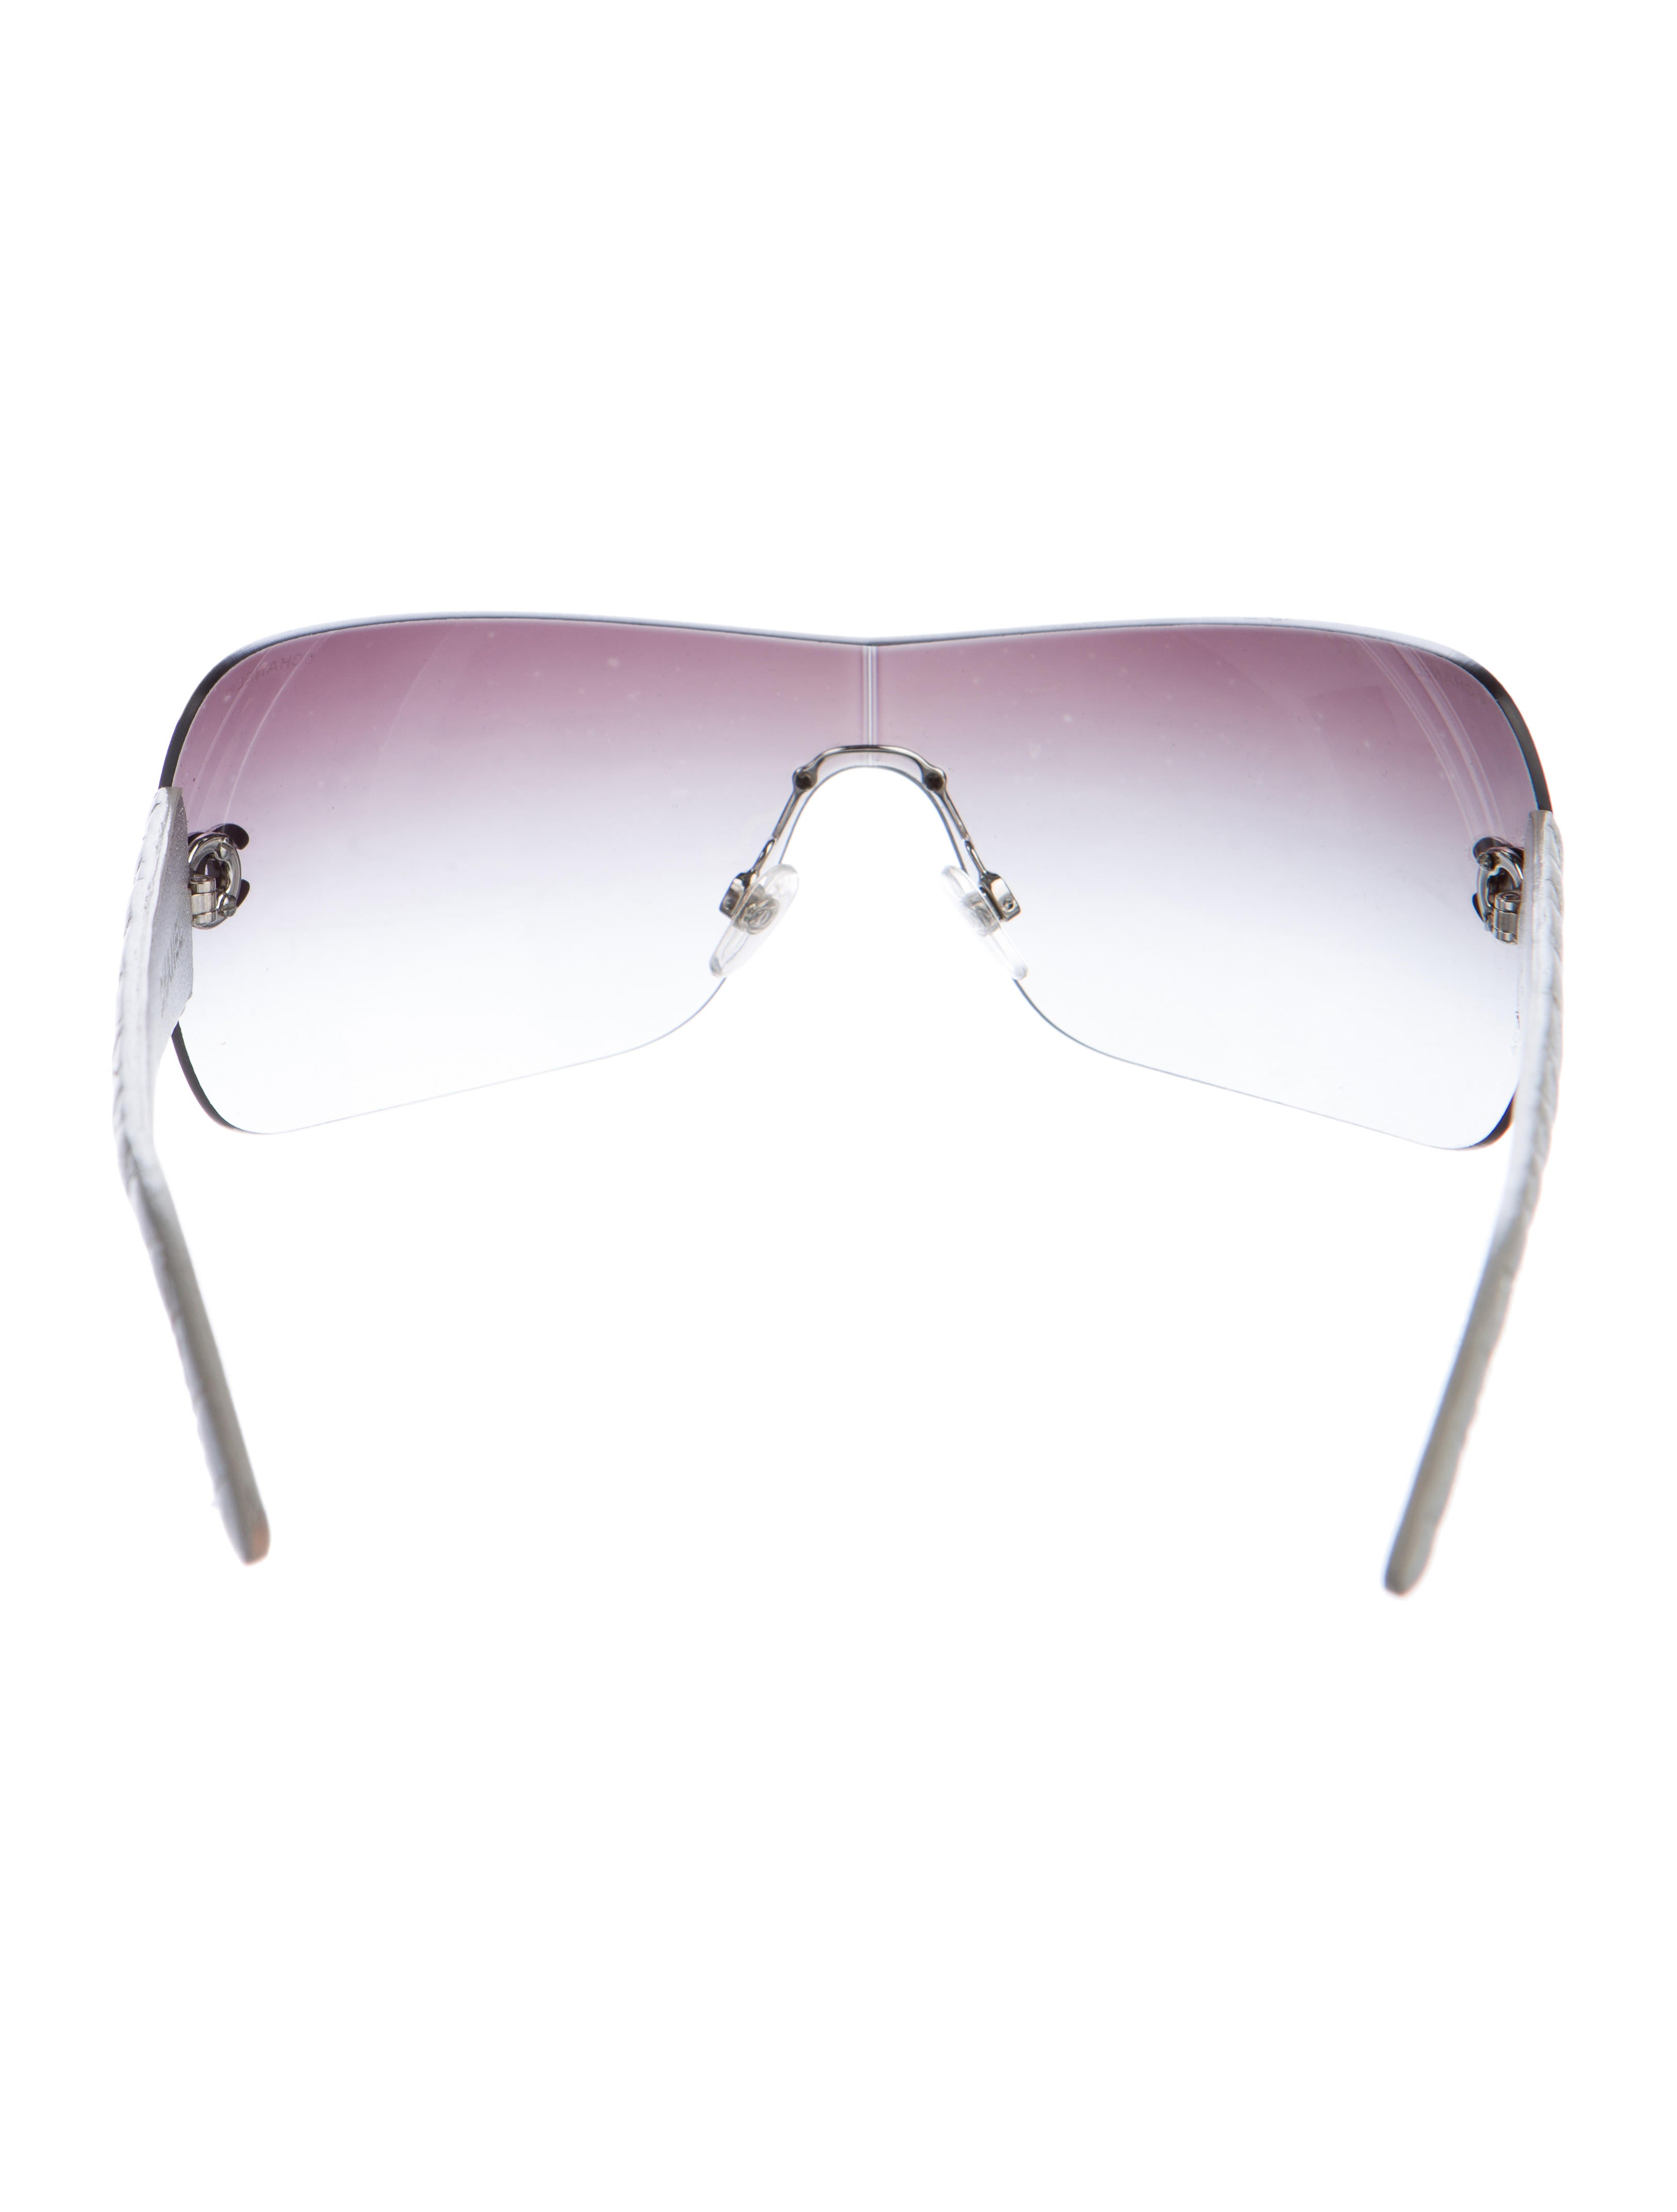 Chanel Glasses Frames Leather : Chanel Quilted Leather Sunglasses - Accessories ...